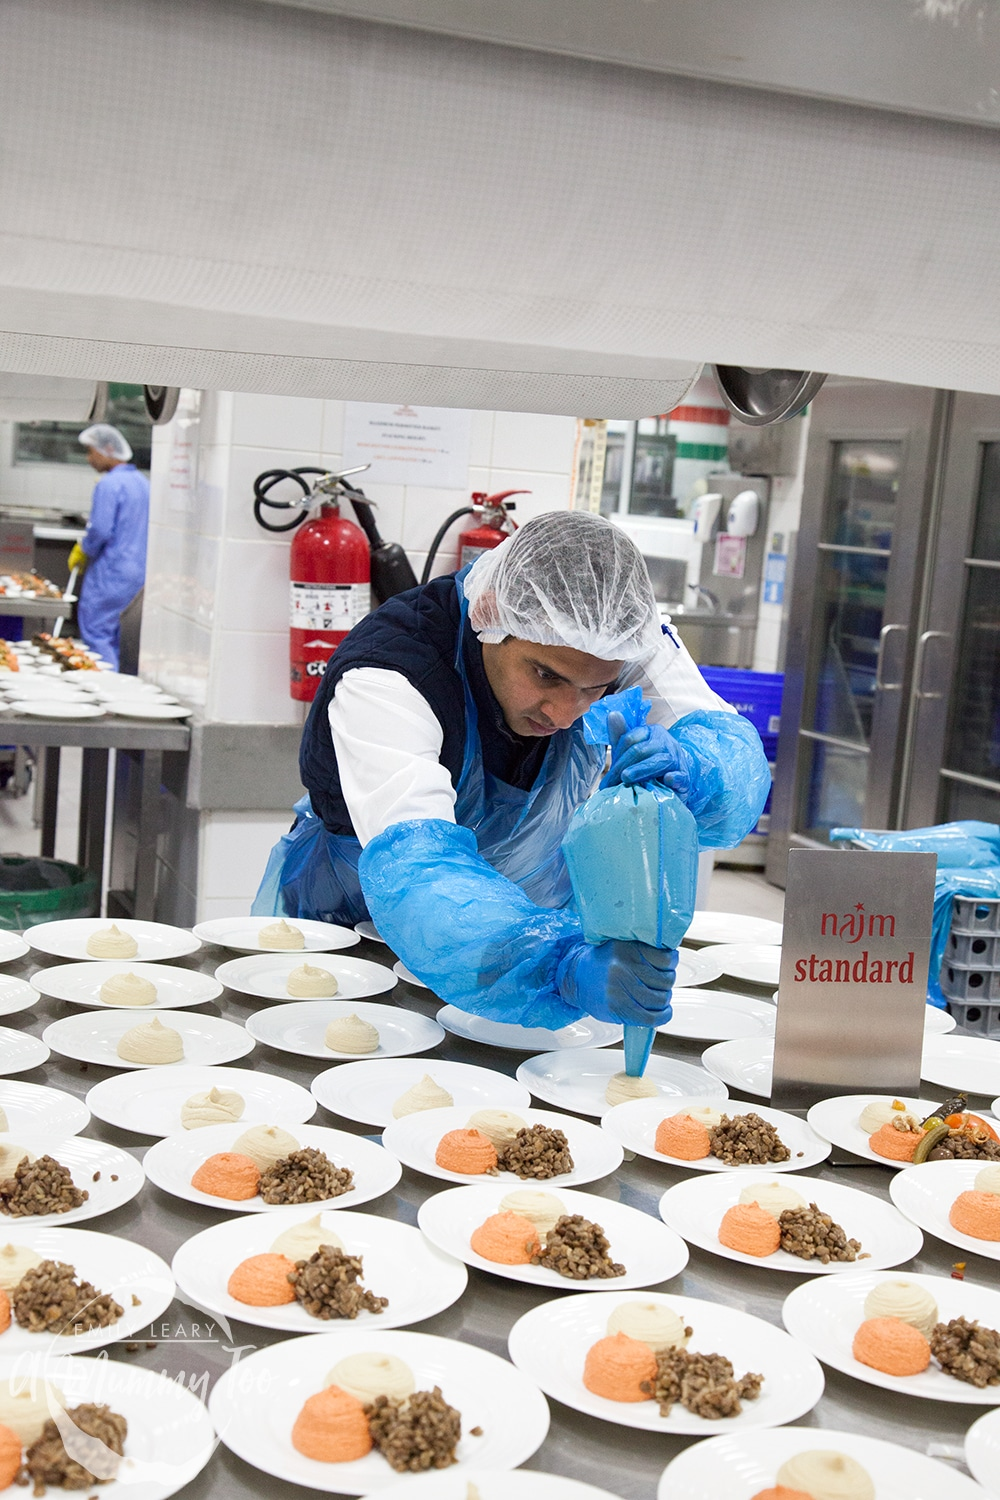 emirates-catering-facility-tour-3